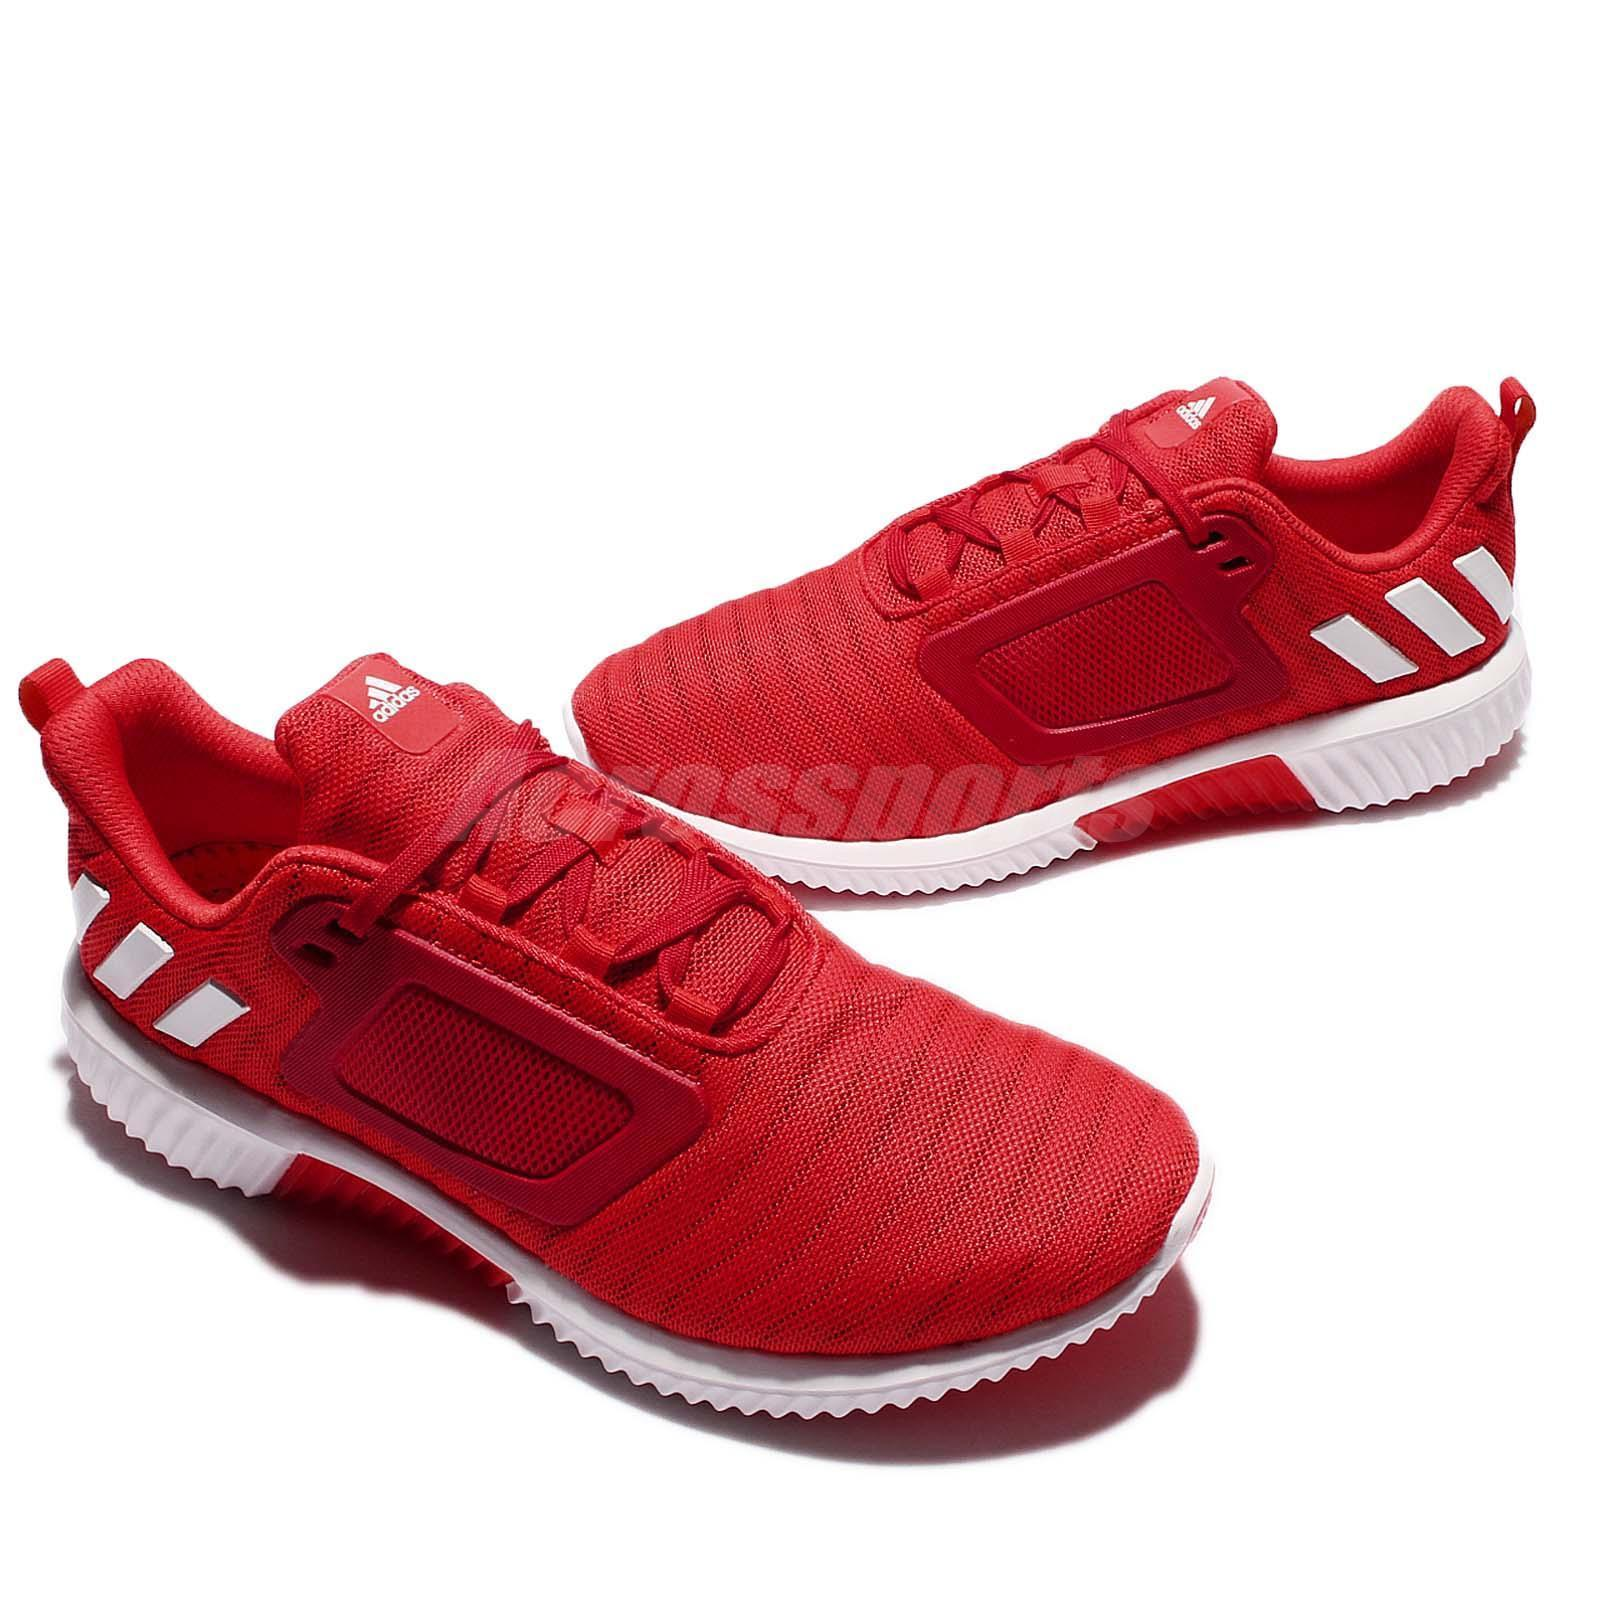 Adidas Climacool - Red-Full All - WearTesters ebdbcbf31615